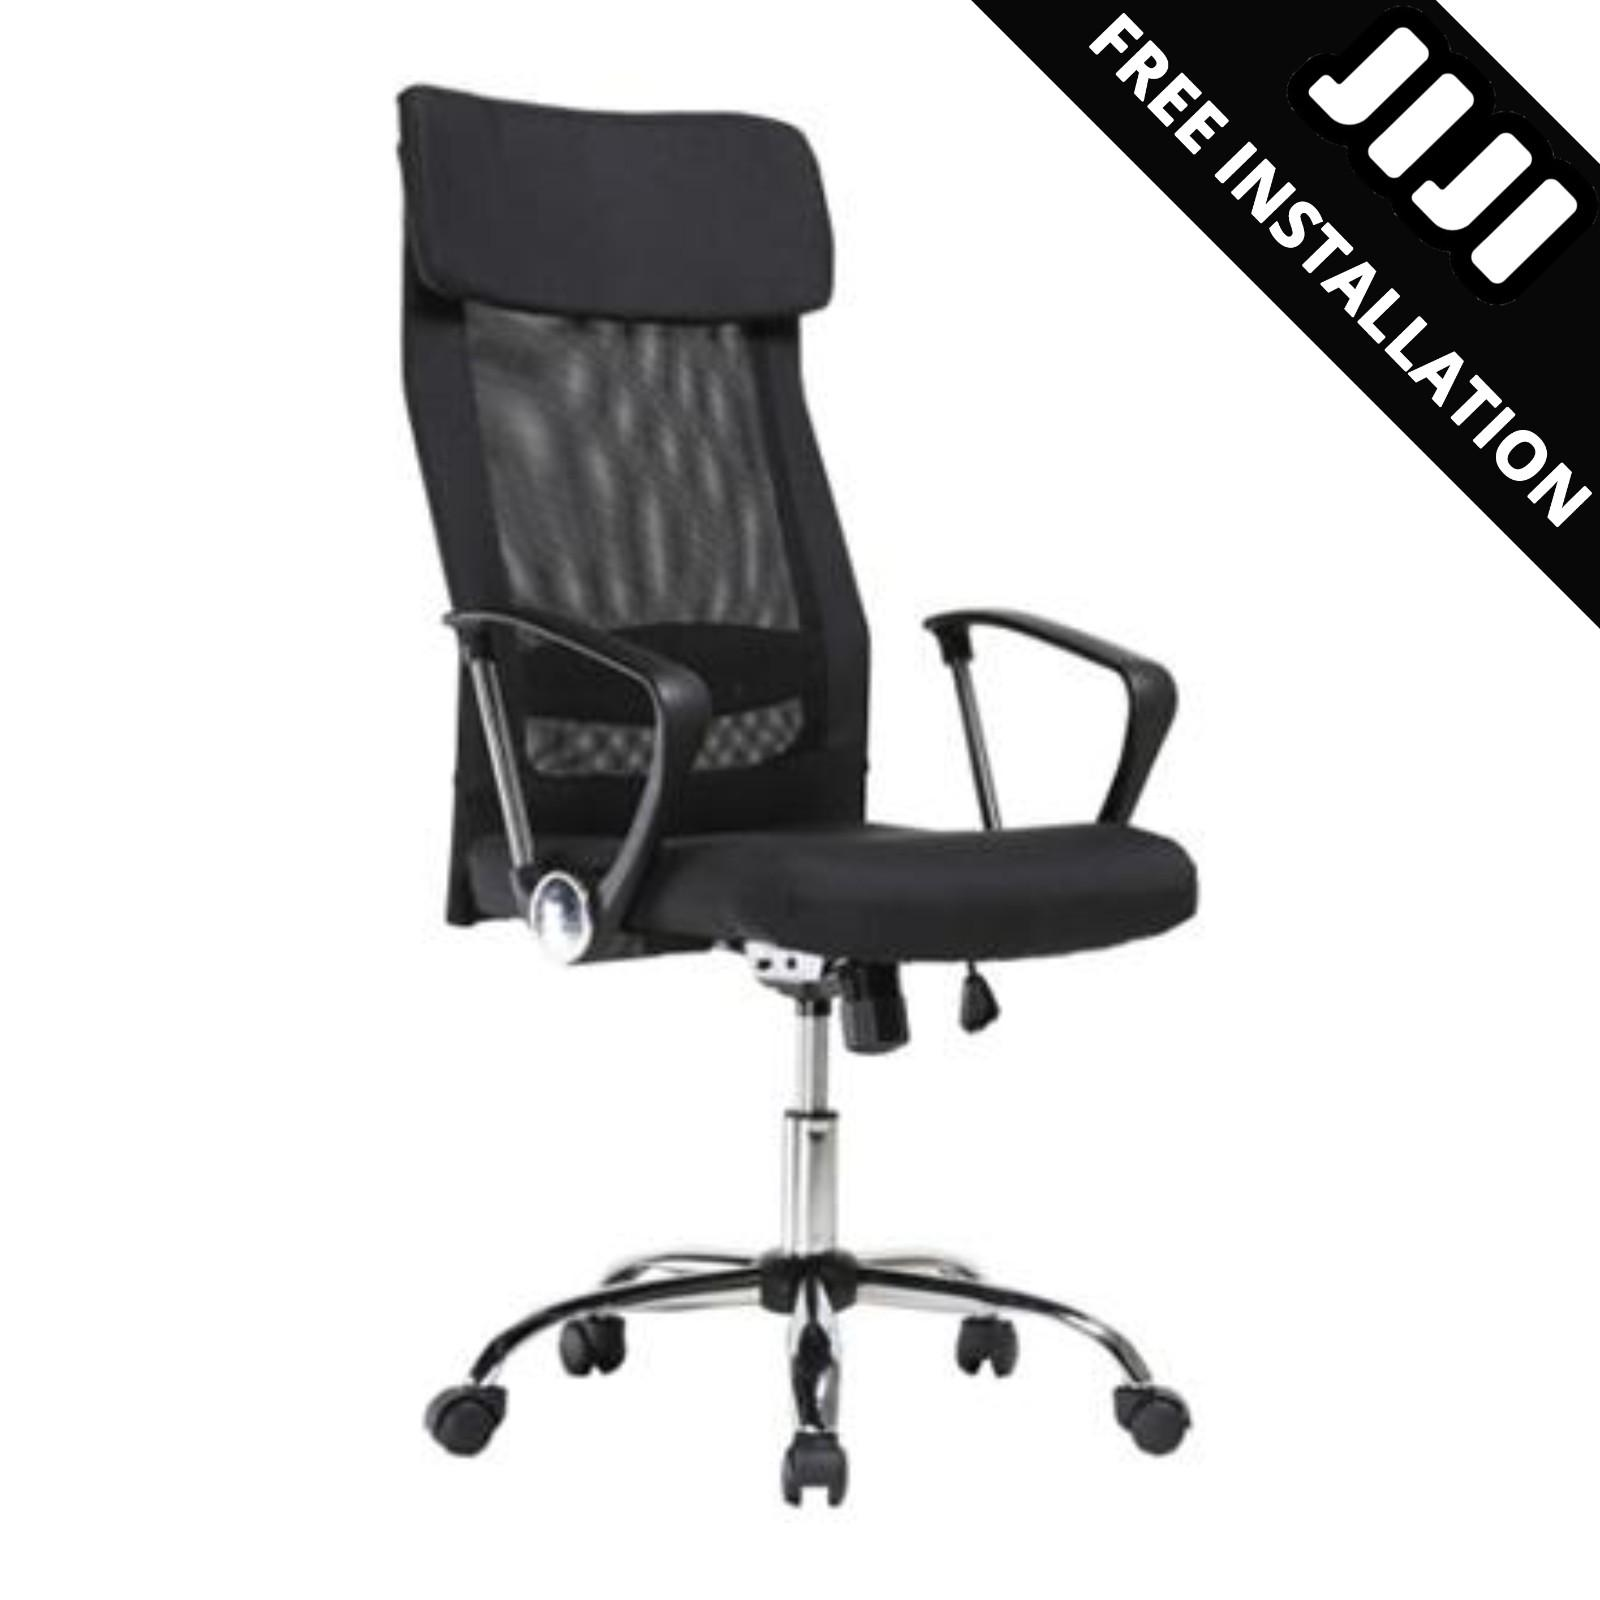 JIJI Office Chair Director Chair Ver 2 (Free Installation) Office chairs /Study chair/Gaming chair/Ergonomic/ Free 12 Months Warranty (SG) Singapore